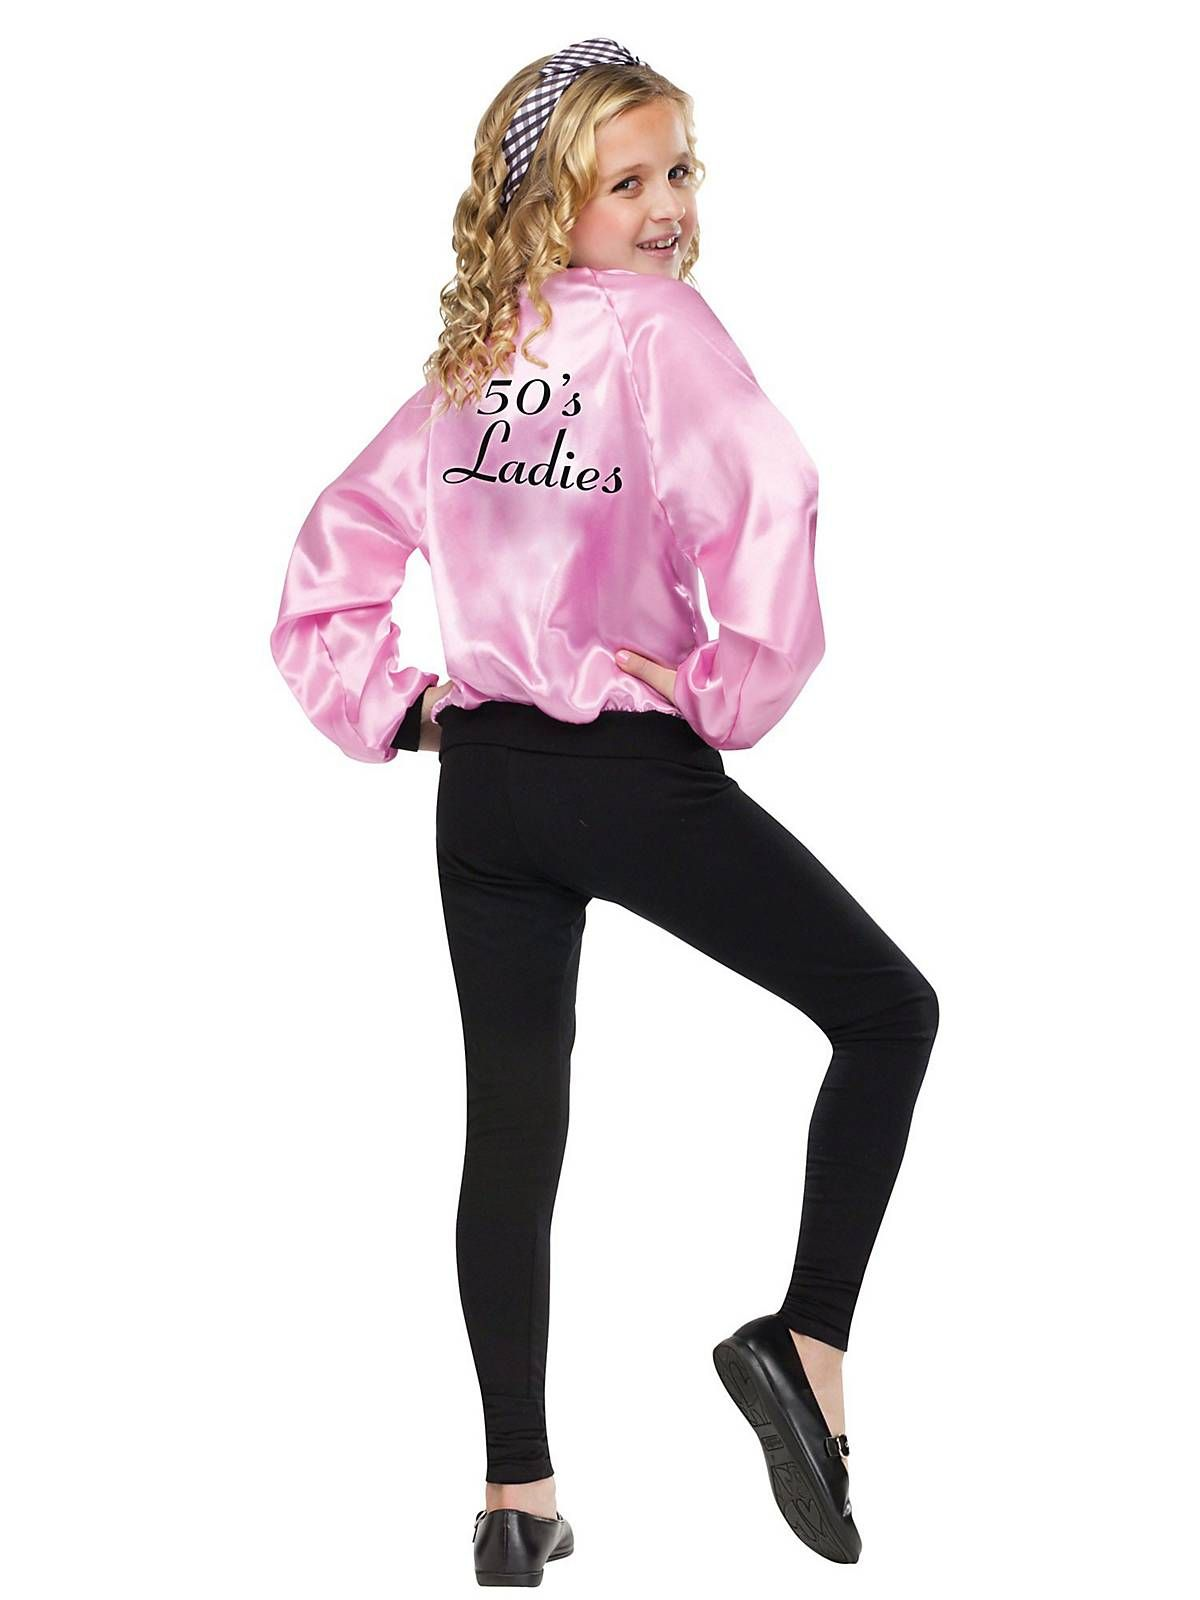 Take a trip back in time to the nifty fifties whenever you wear this Girlu0027s Pink Ladies Satin Jacket!  sc 1 st  Pinterest & Girlu0027s Pink Ladies Satin Jacket | Grease | Pinterest | Satin jackets ...